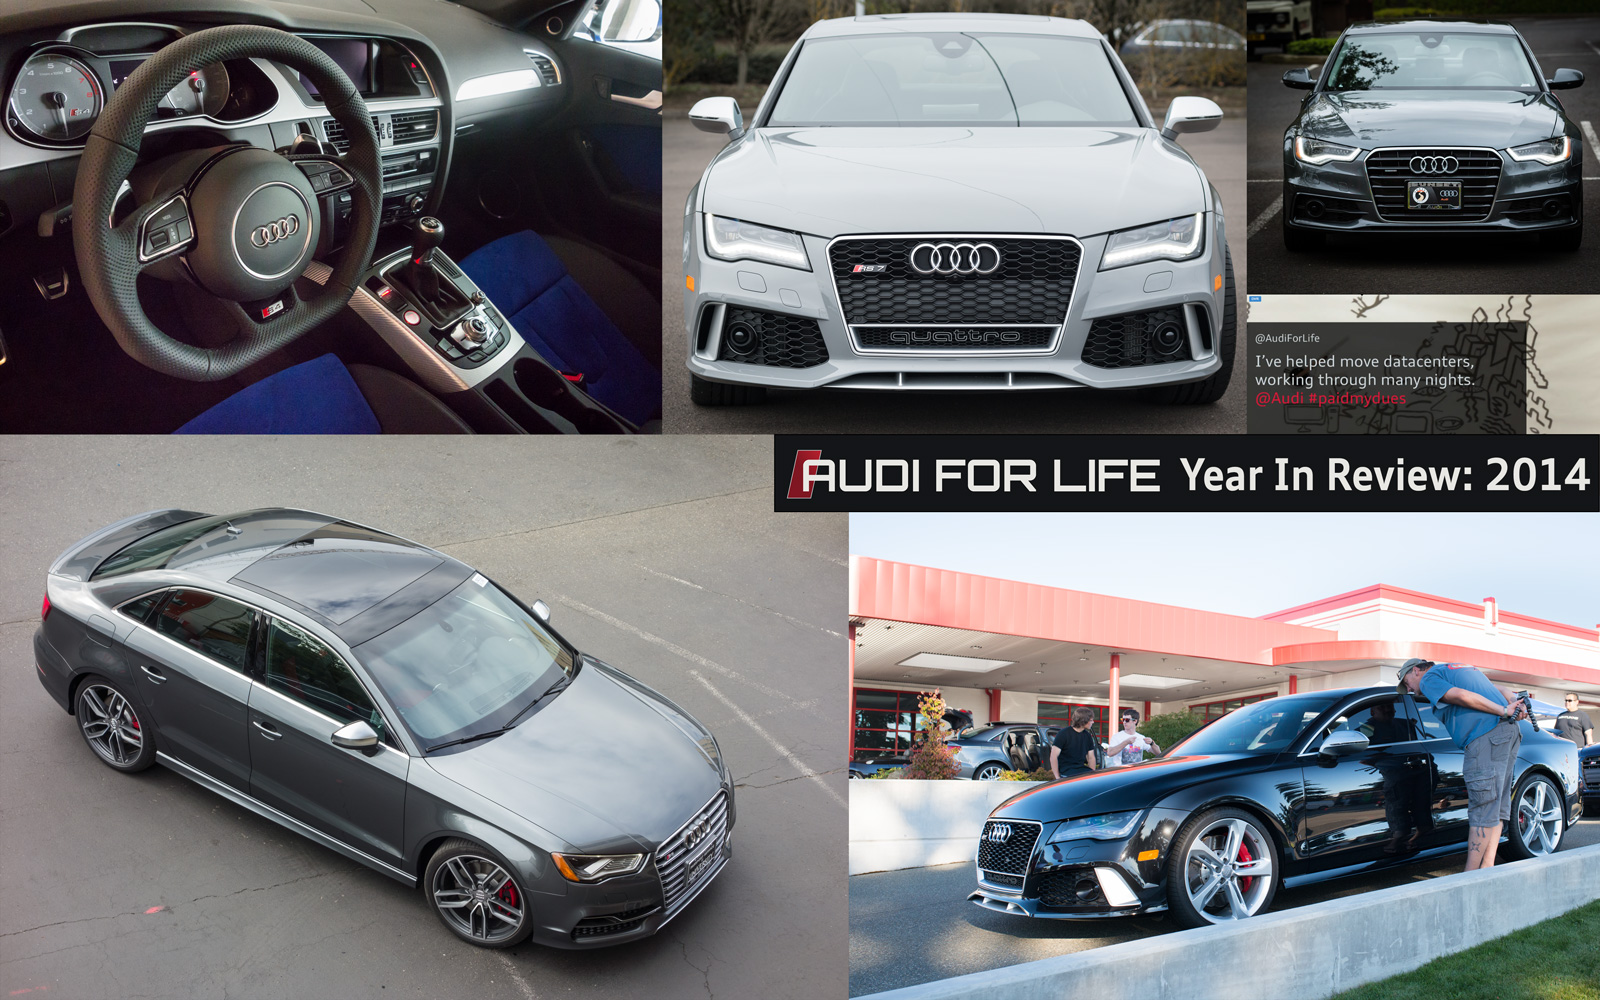 Audi For Life Year In Review 2014